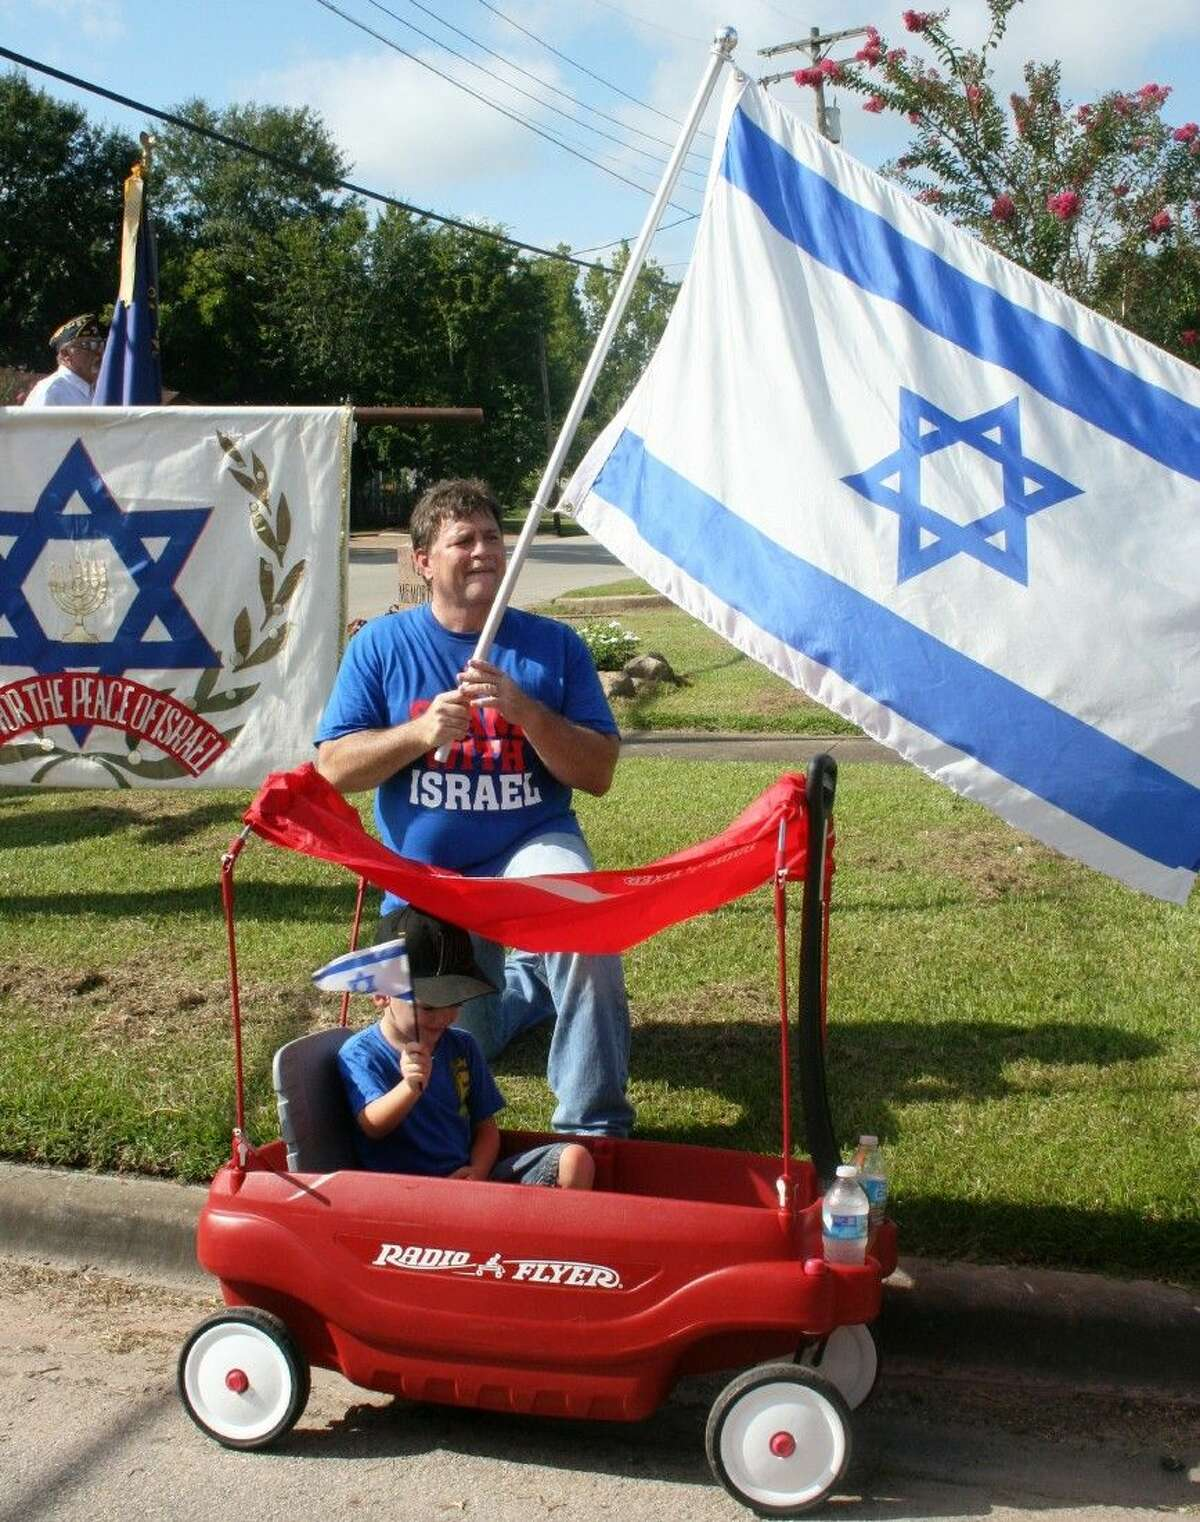 Spectators at the Aug. 23 march to support Israel, including young Parker in a Radio Flyer wagon, carried flags and donned shirts in support of Israel.